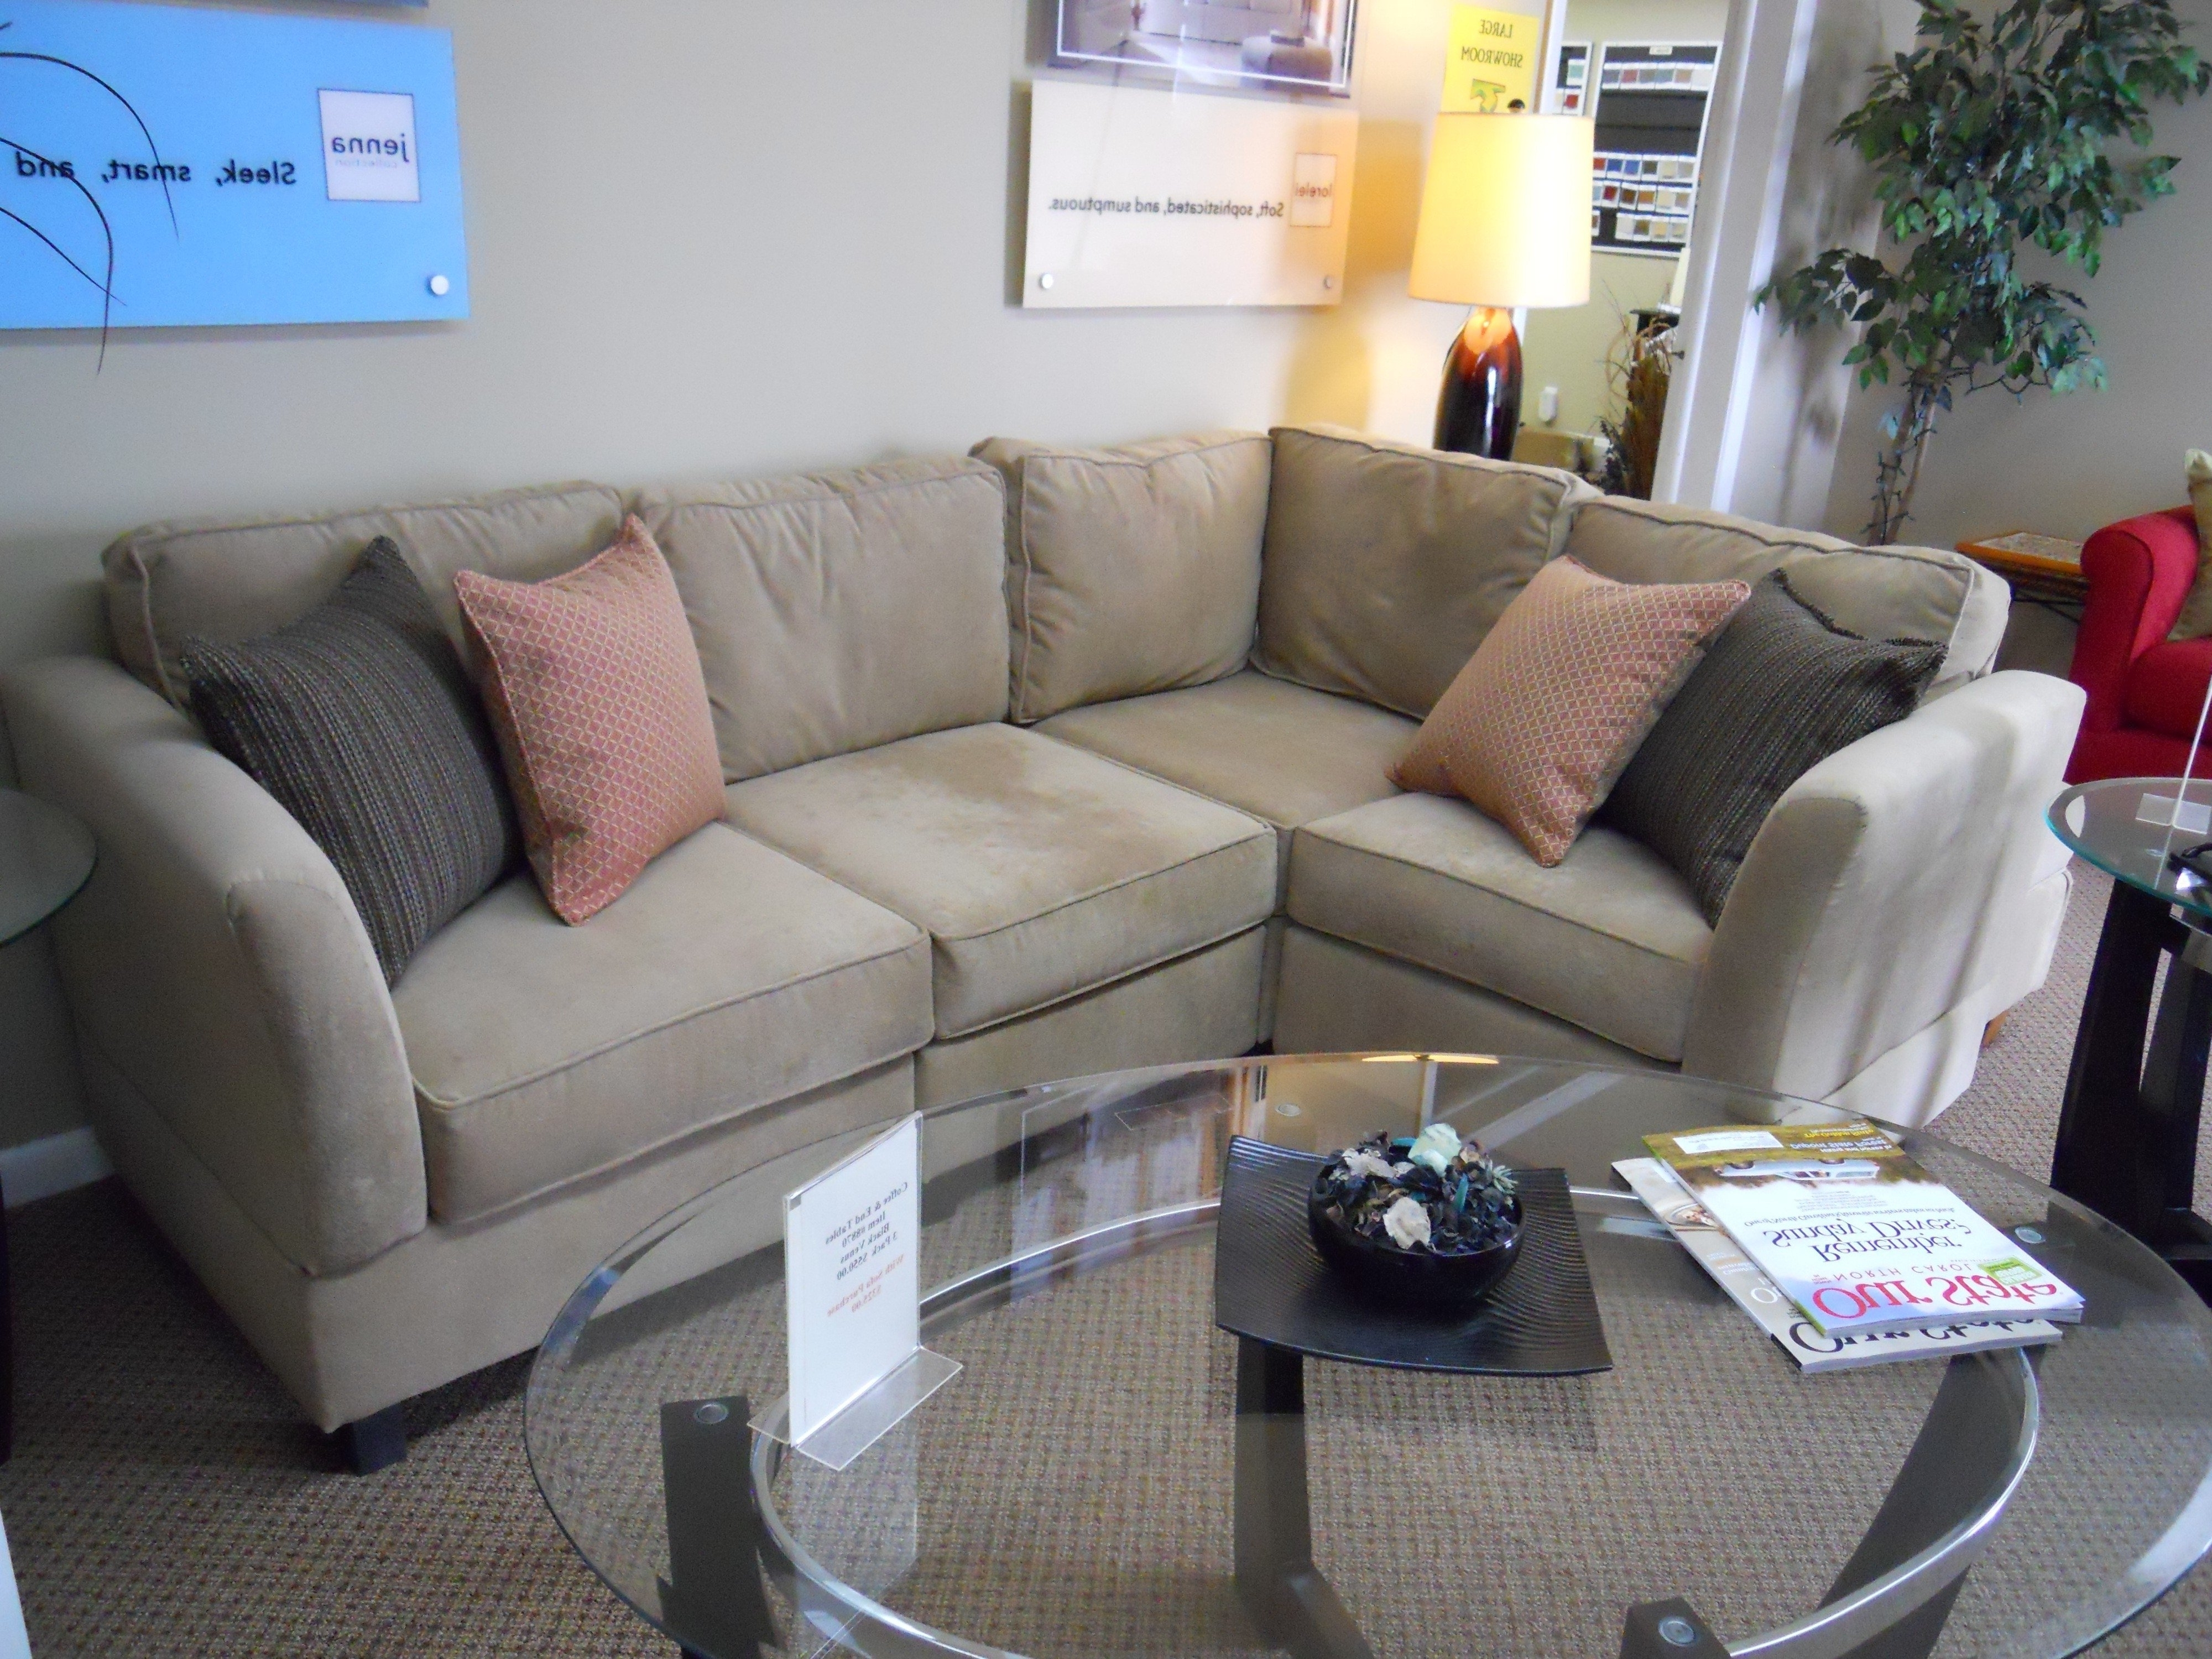 Reclining Sectional Sofas For Small Spaces W Script With Small Regarding Most Up To Date Sectional Sofas In Small Spaces (View 11 of 15)